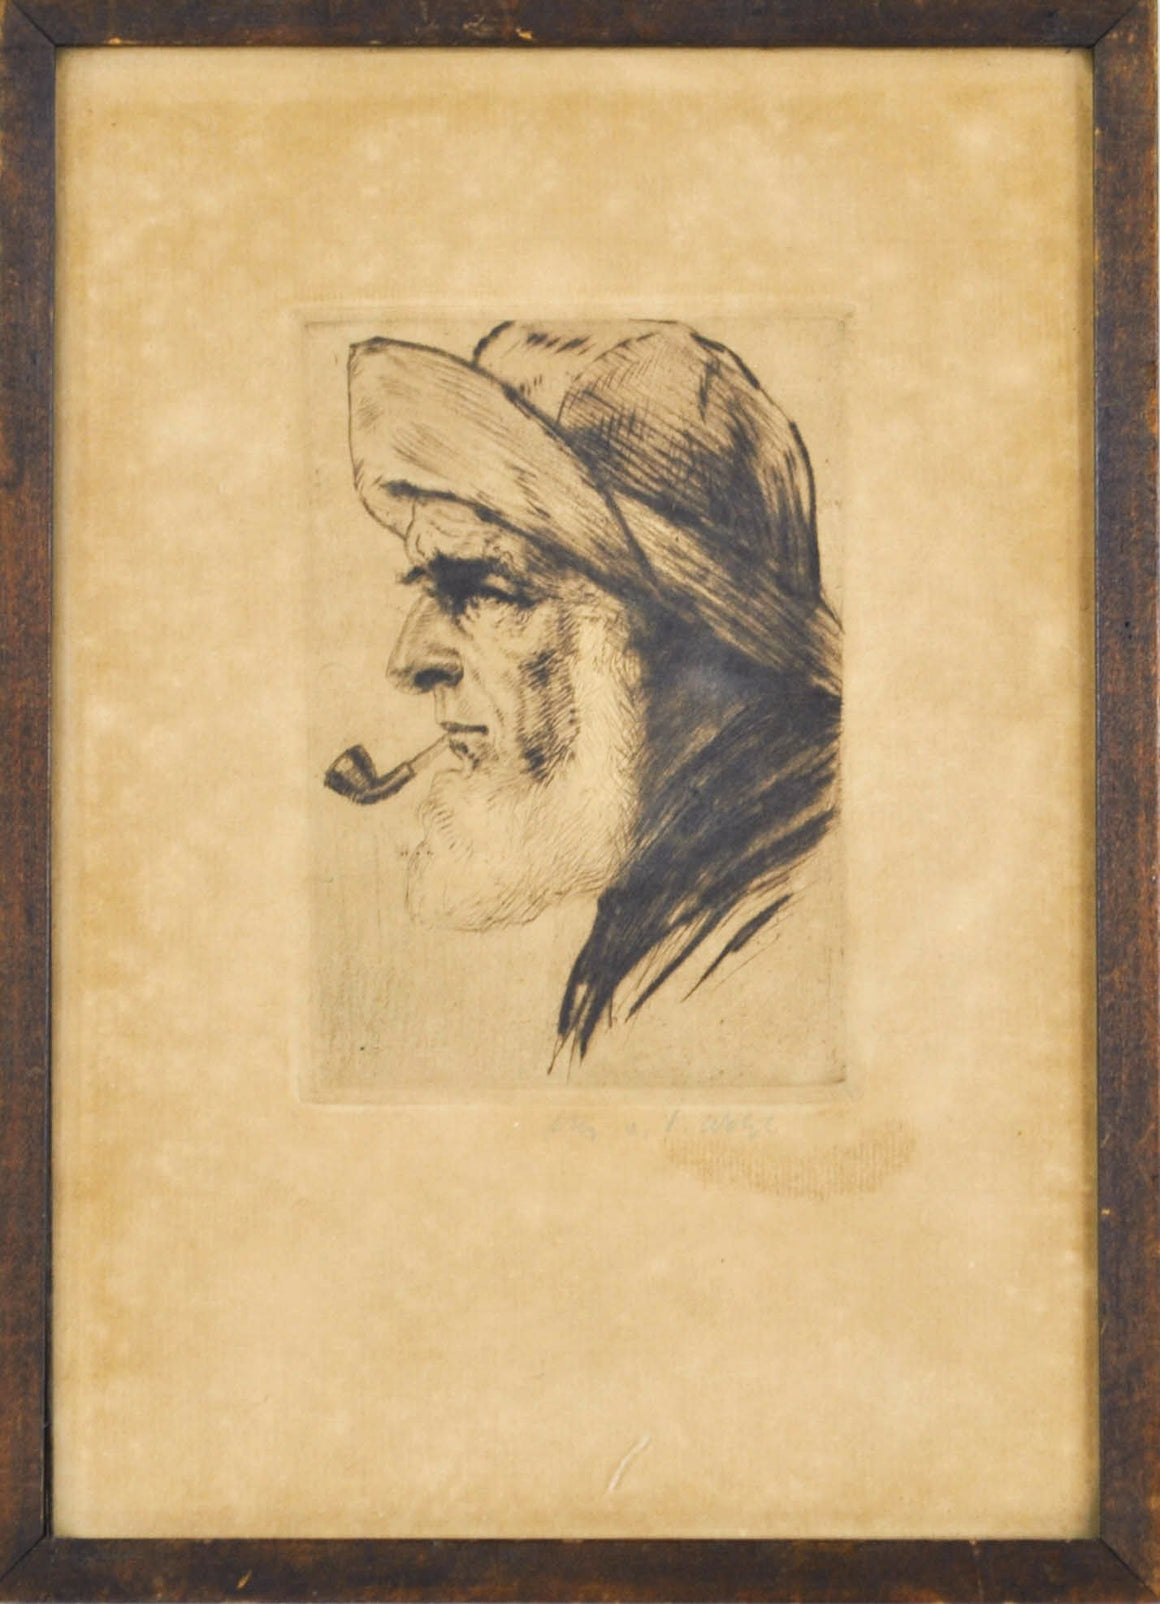 Antique Portrait Elder Man Smoking Pipe Pencil Signed Framed 7x10in